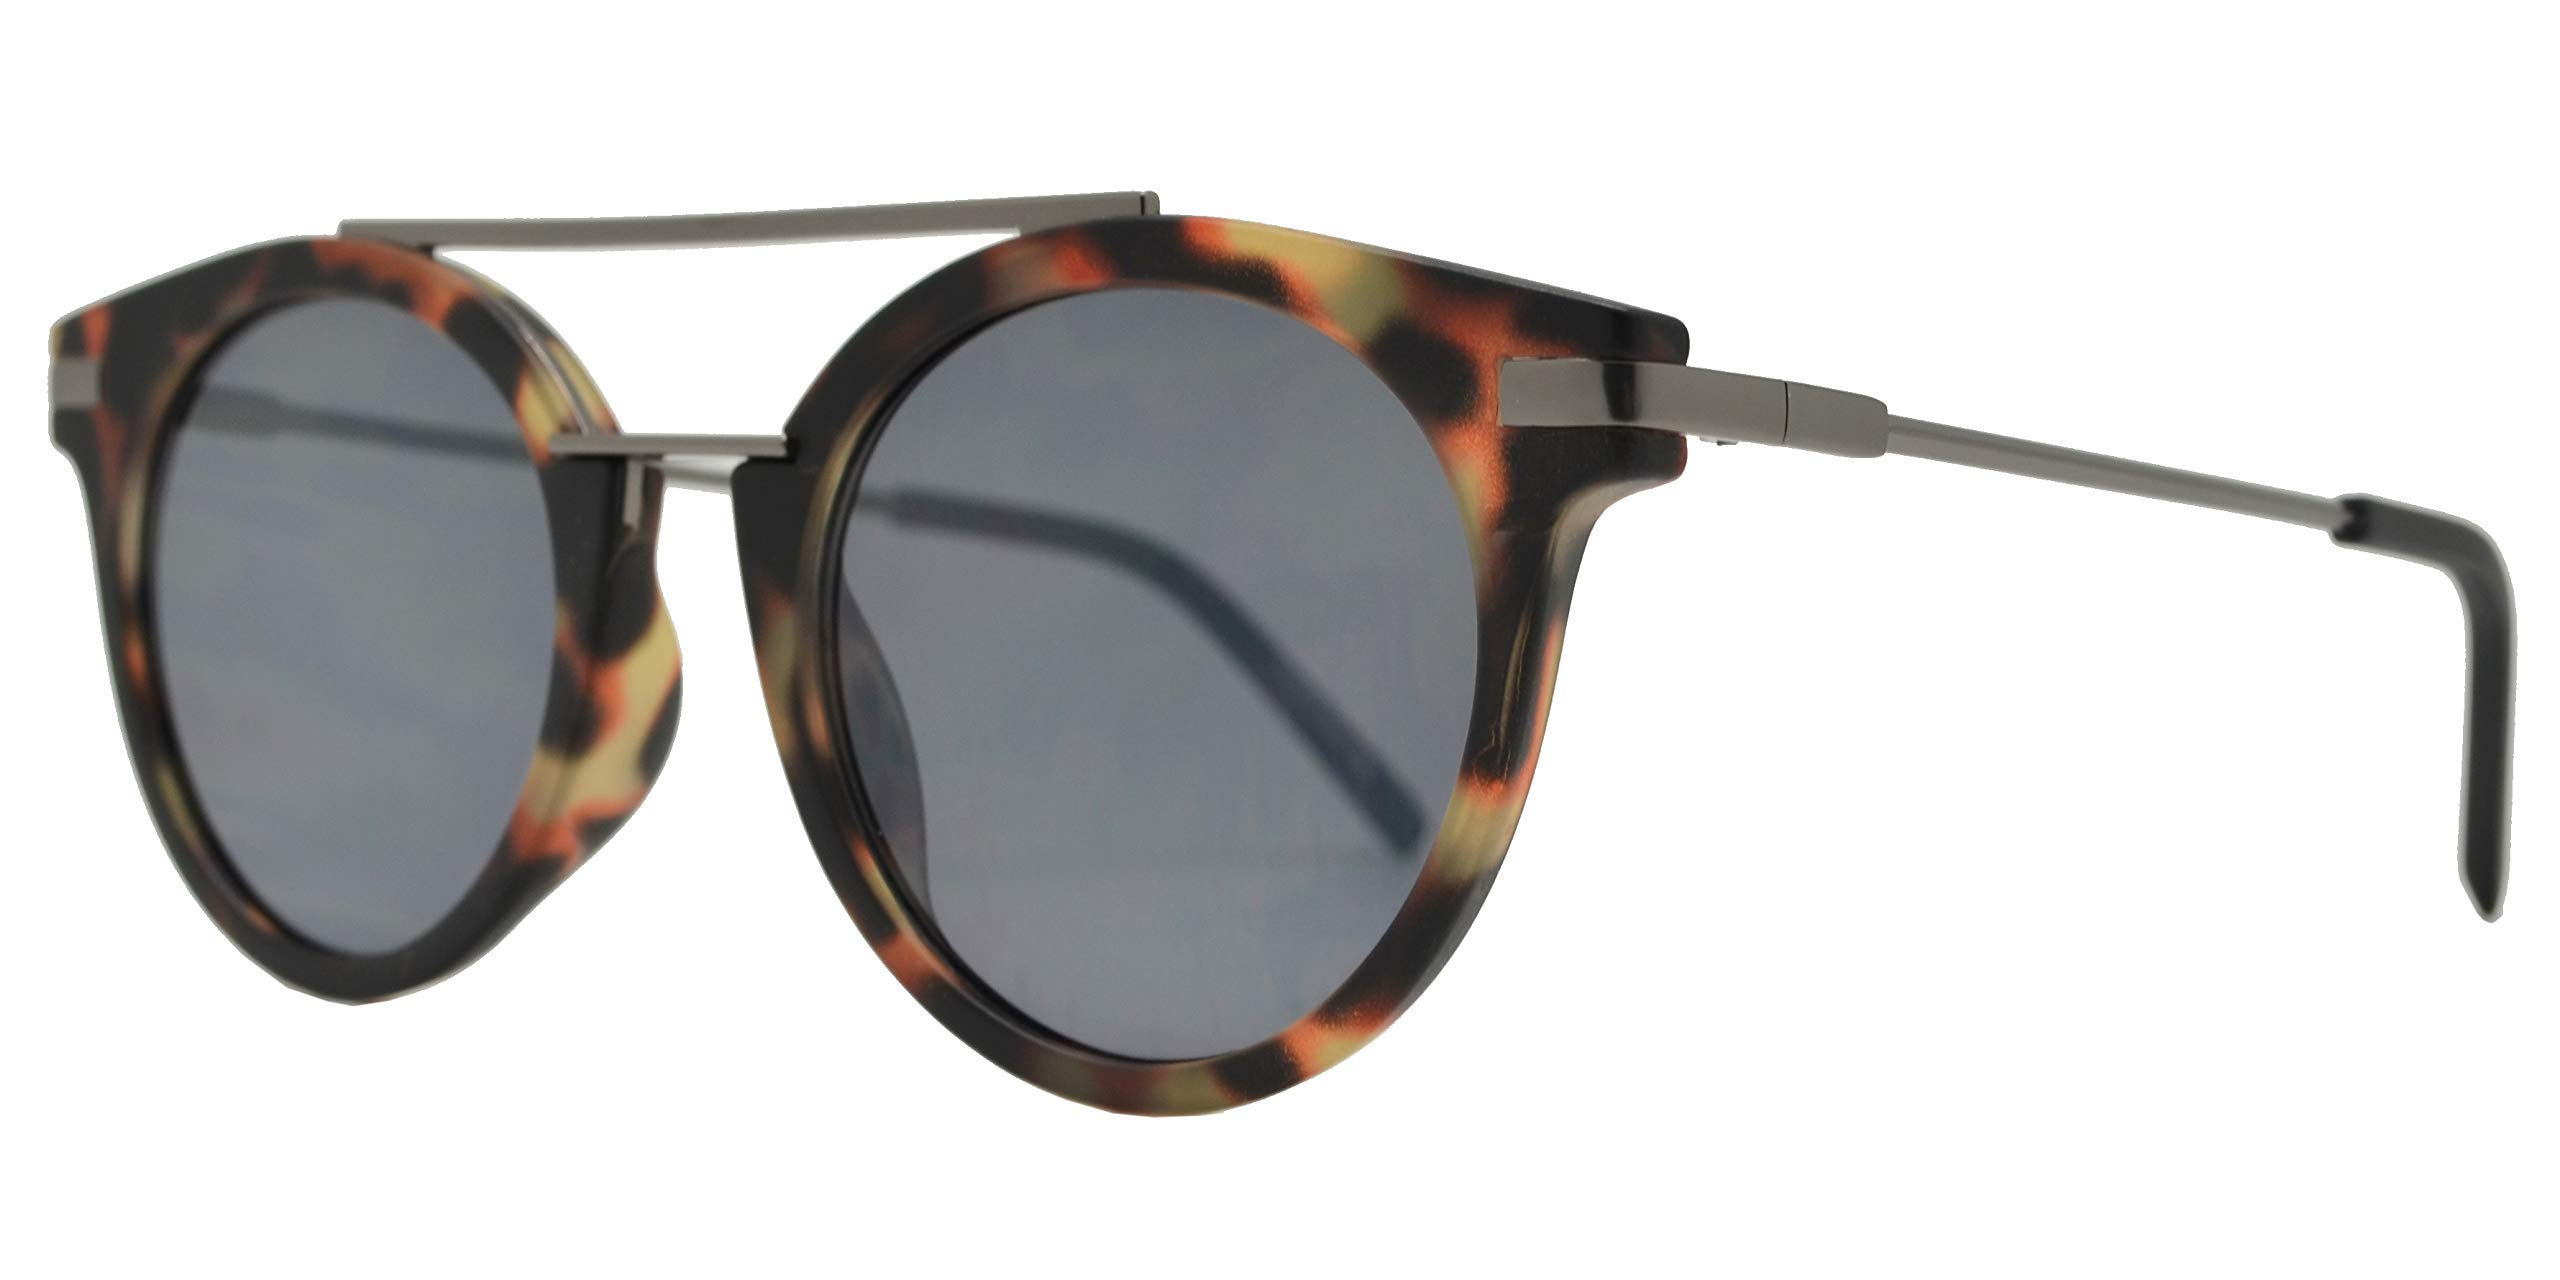 Retro Vintage Round Flat Lens Horn Rimmed Sunglasses with Metal Brow Bar (Tortoise + Smoke) by Froya